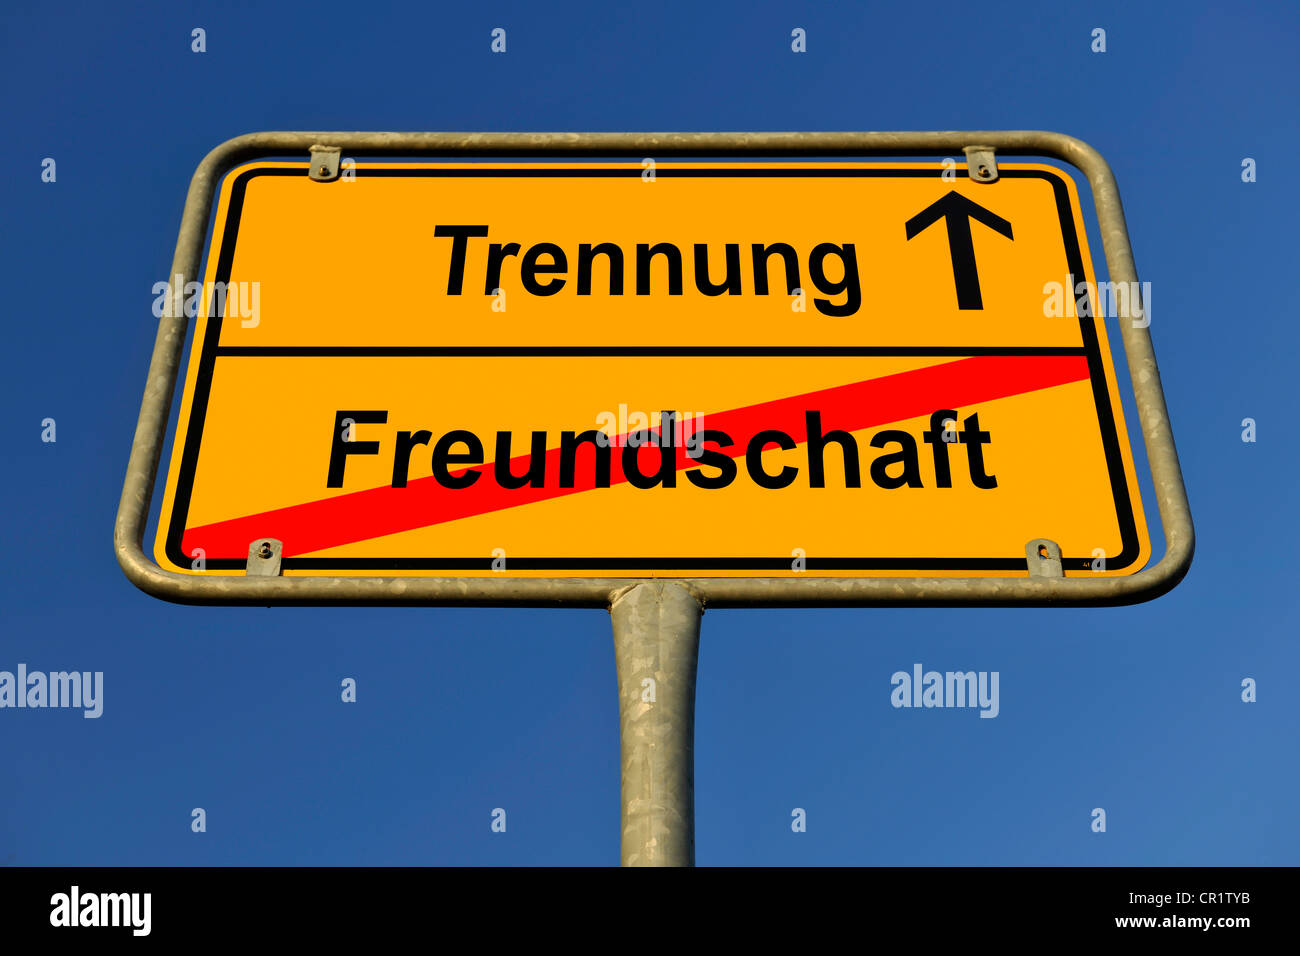 City limit sign, symbolic image for the way from Freundschaft to Trennung, German for going from having a friendship to having a Stock Photo